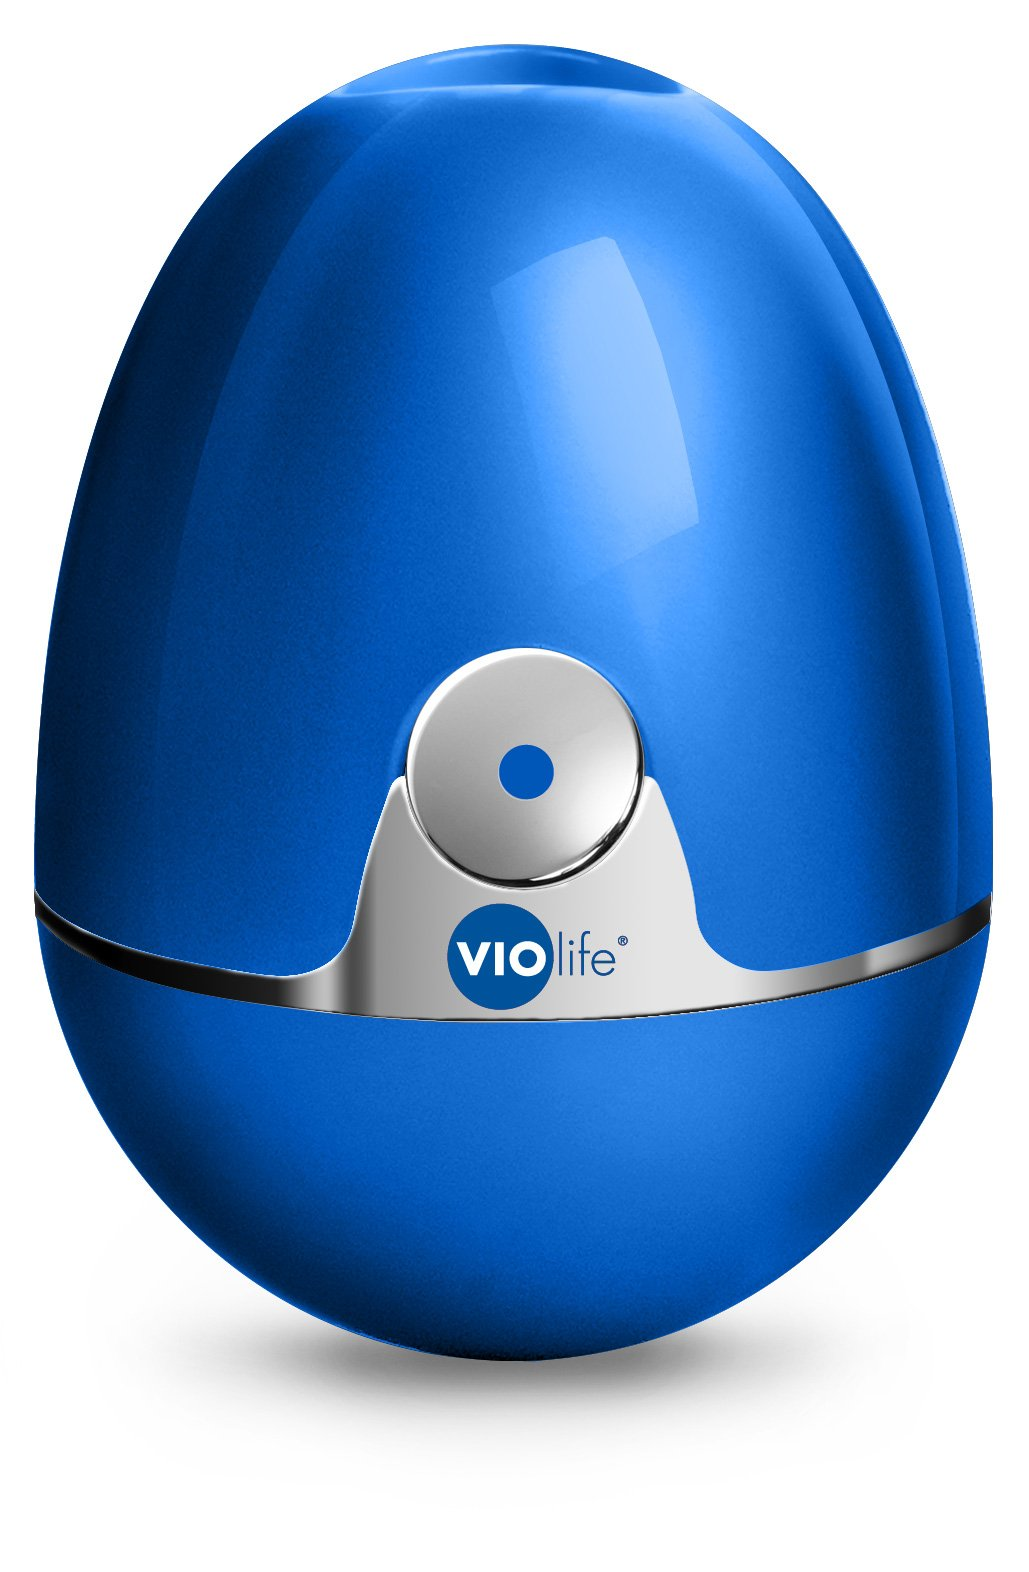 Violife Style Zapi Luxe UV Toothbrush Sanitizer, Cobalt, 6.3 Ounce